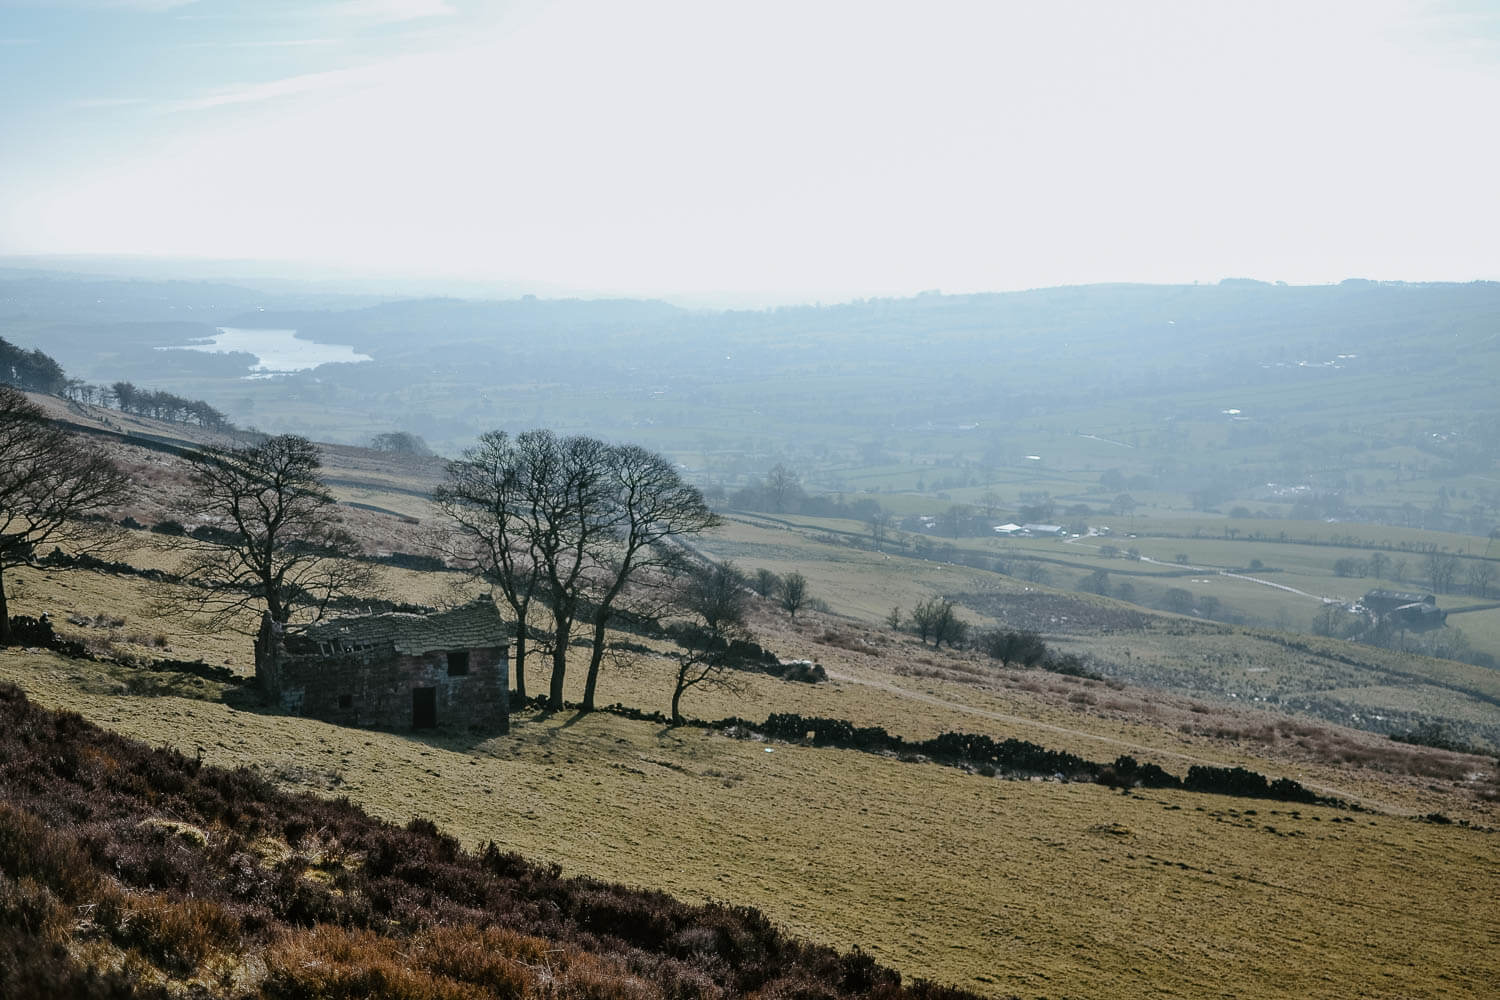 The view from the Roaches in the Peak District - a rugged landscape with dry stone walls